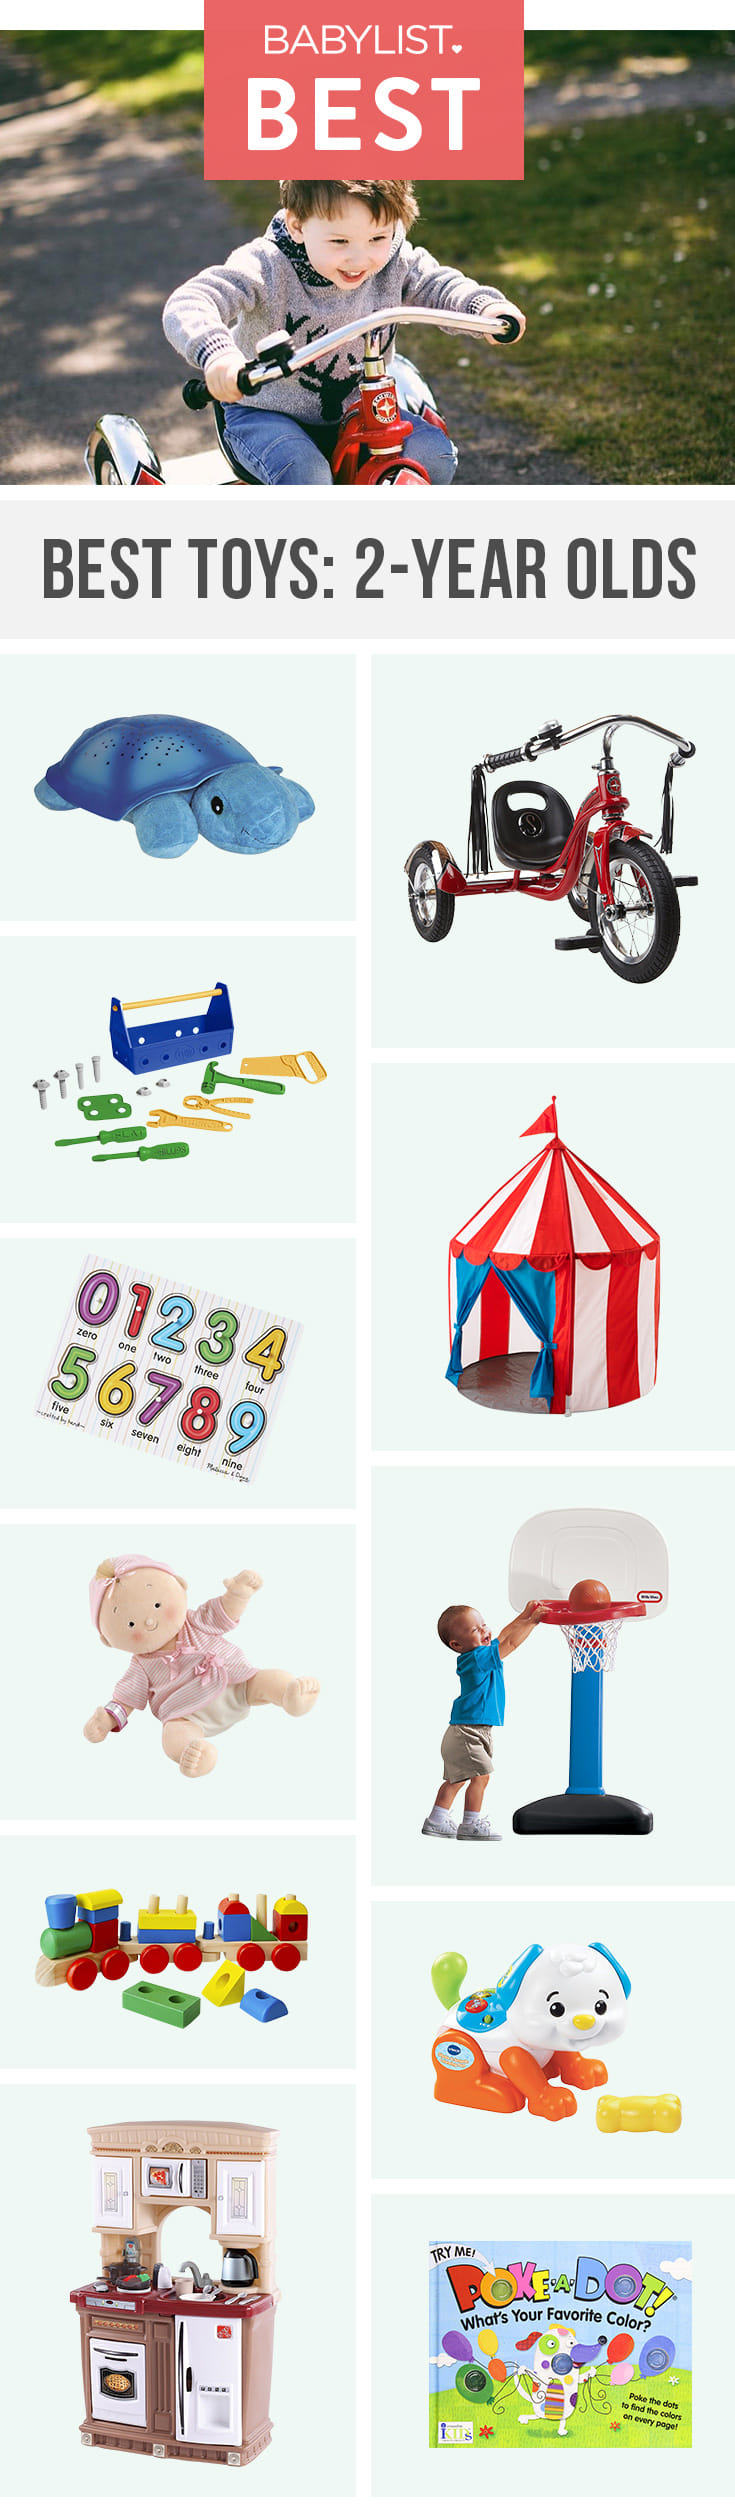 Your toddler is on a mission to have fun. Encourage them with these fun toys.